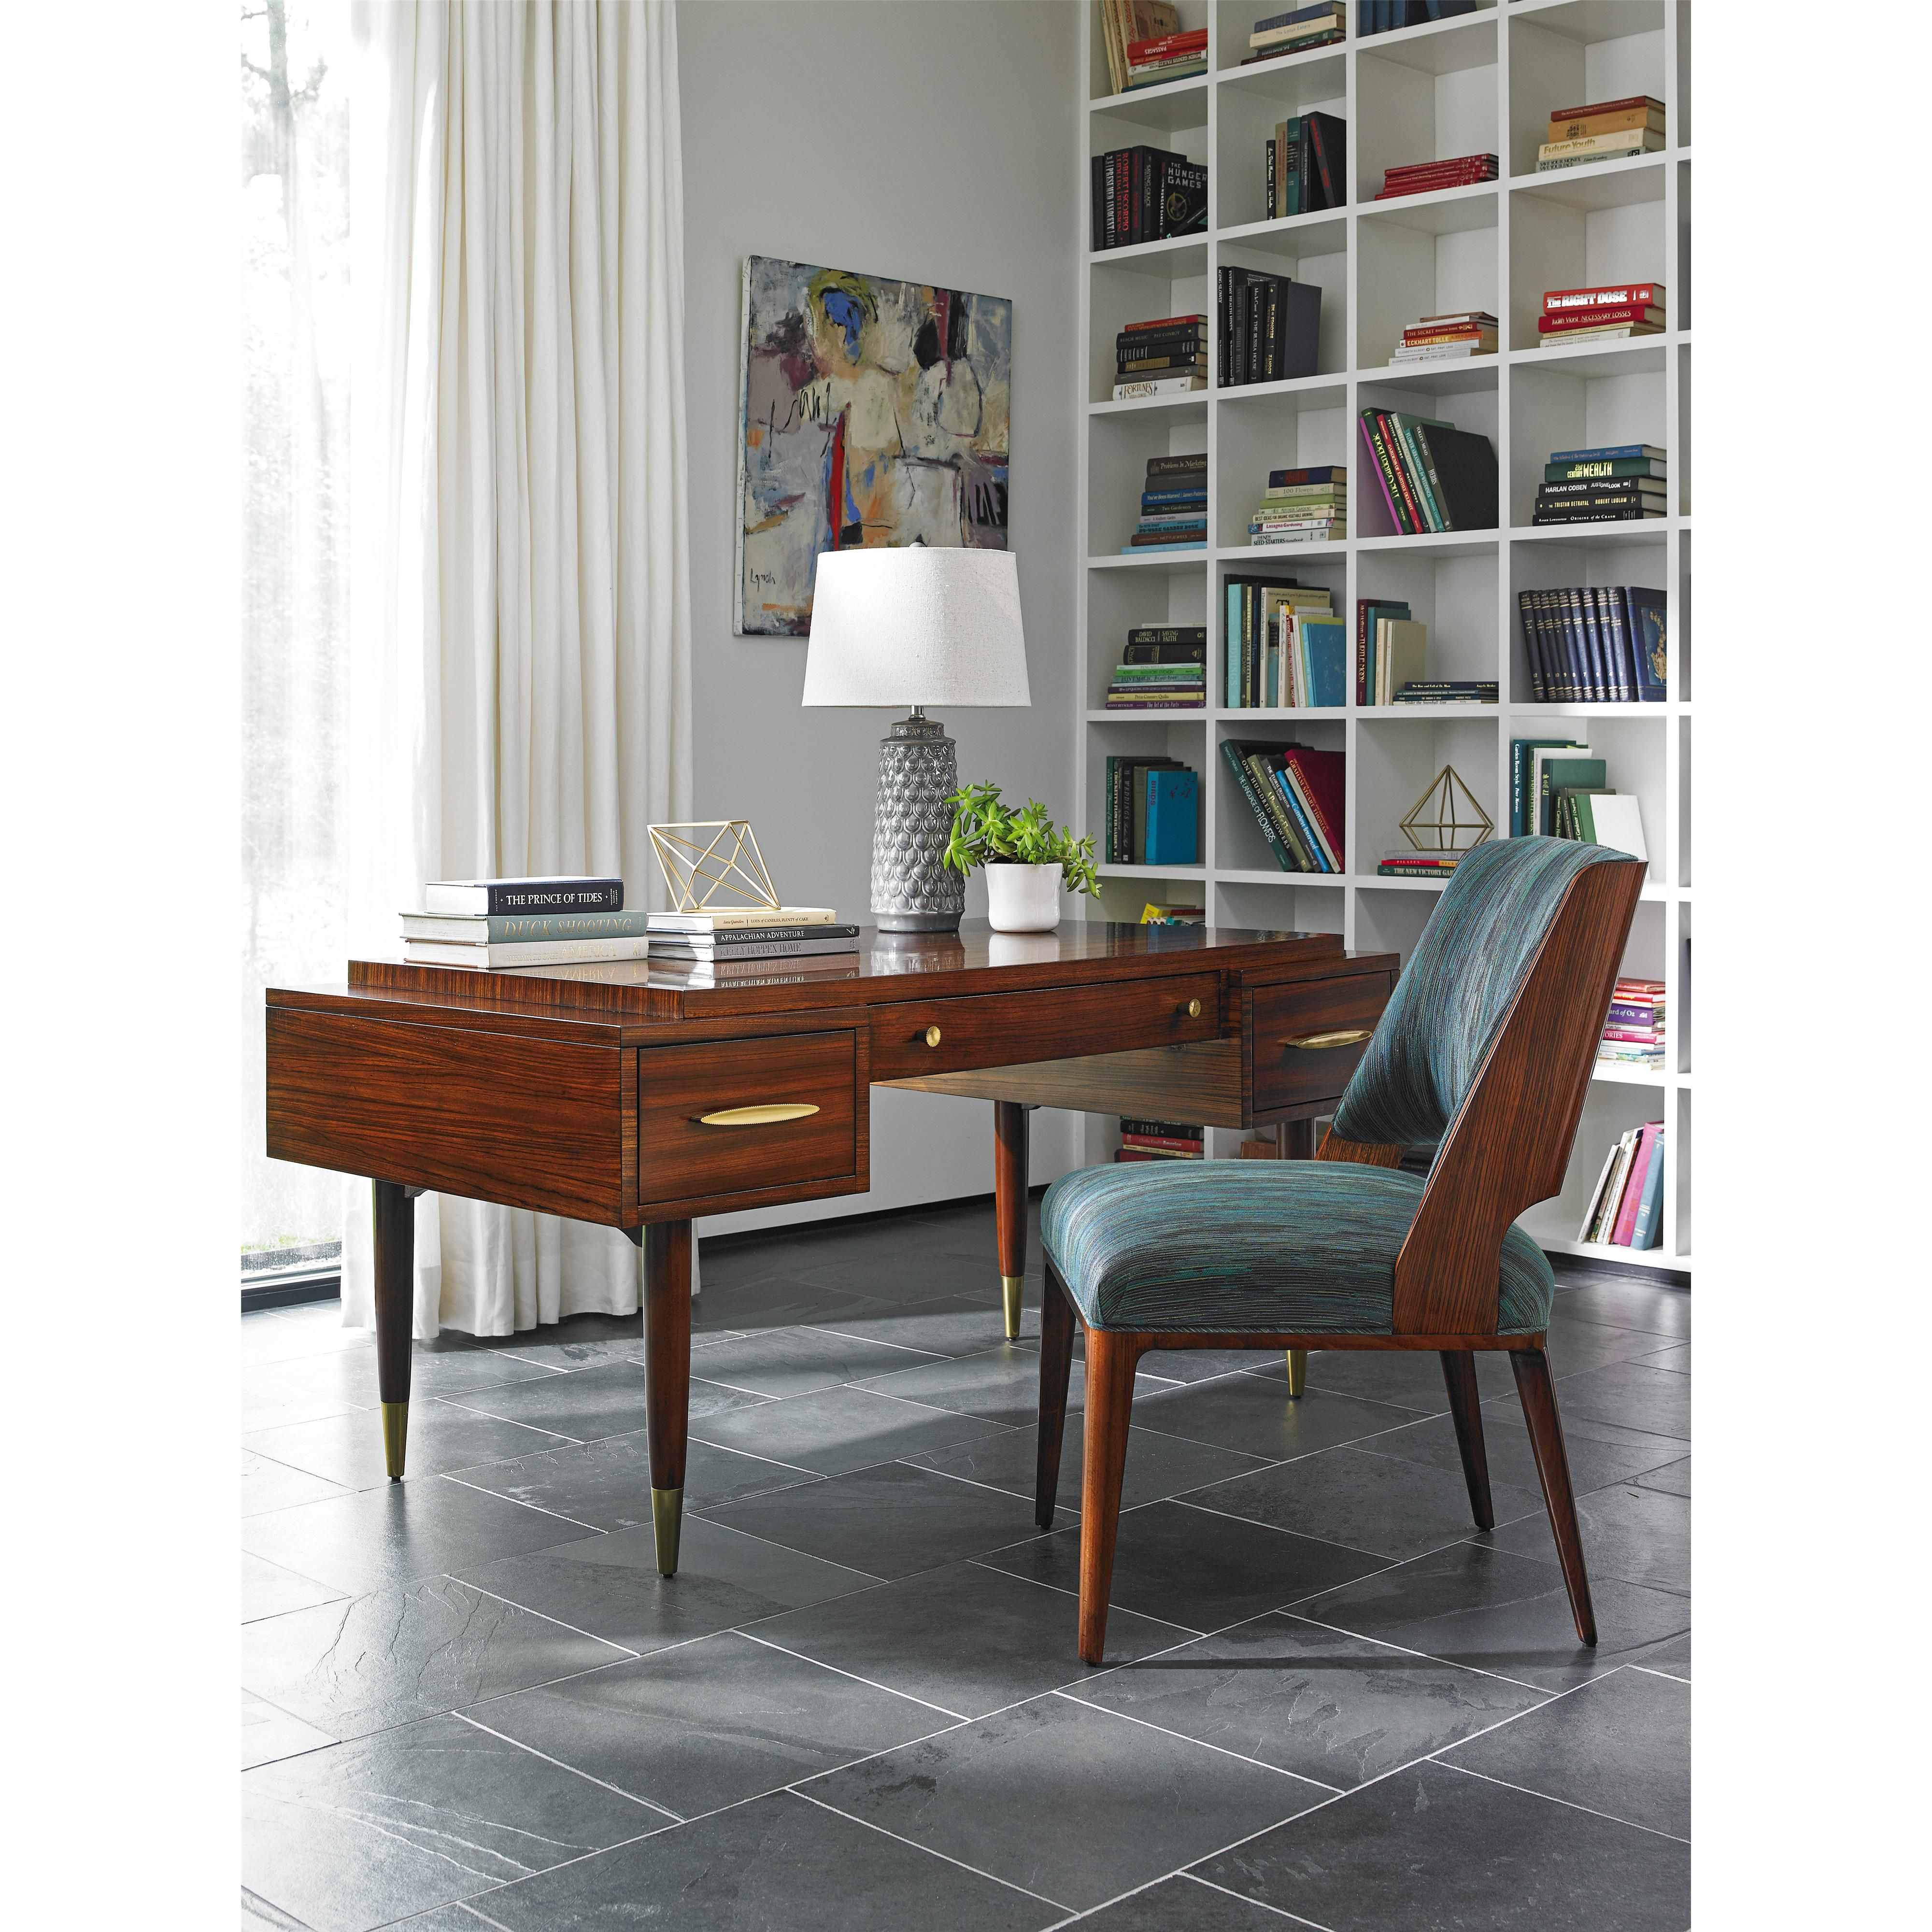 TAKE FIVE Harrison Mid Century Modern Desk With Drop-Front